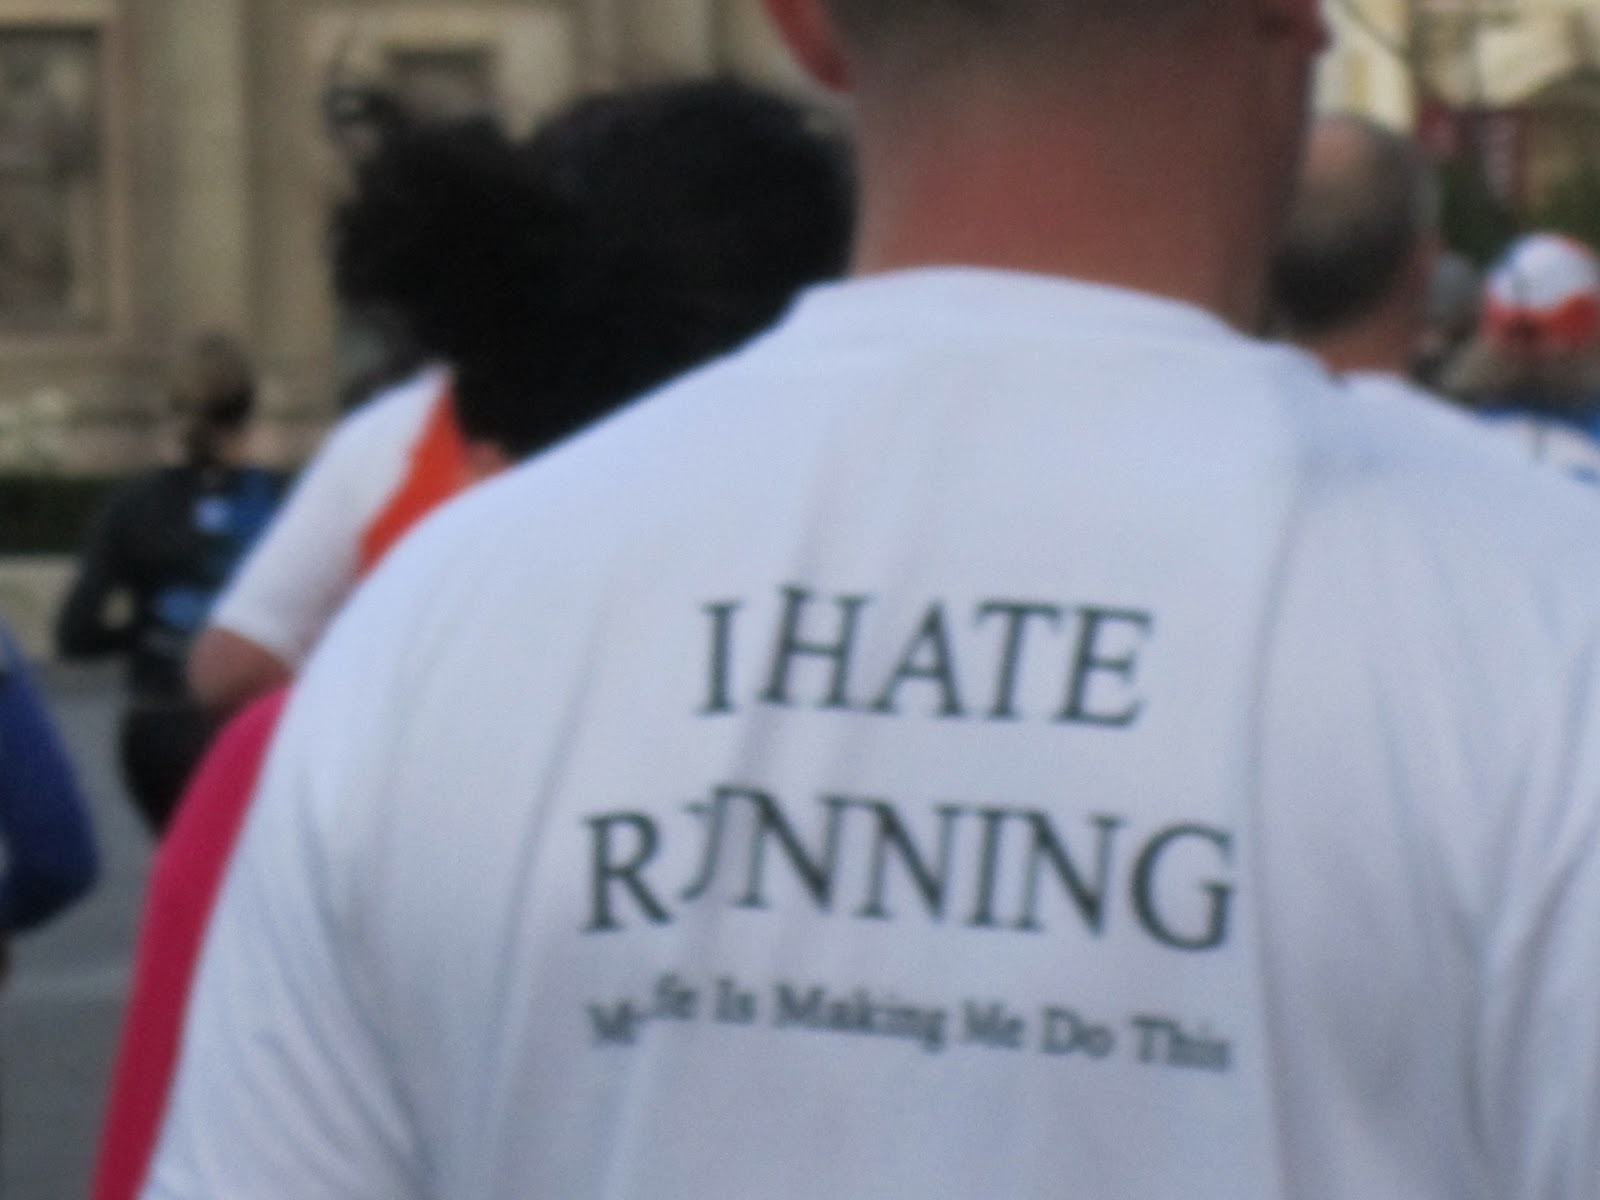 running quotes for t shirts quotesgram